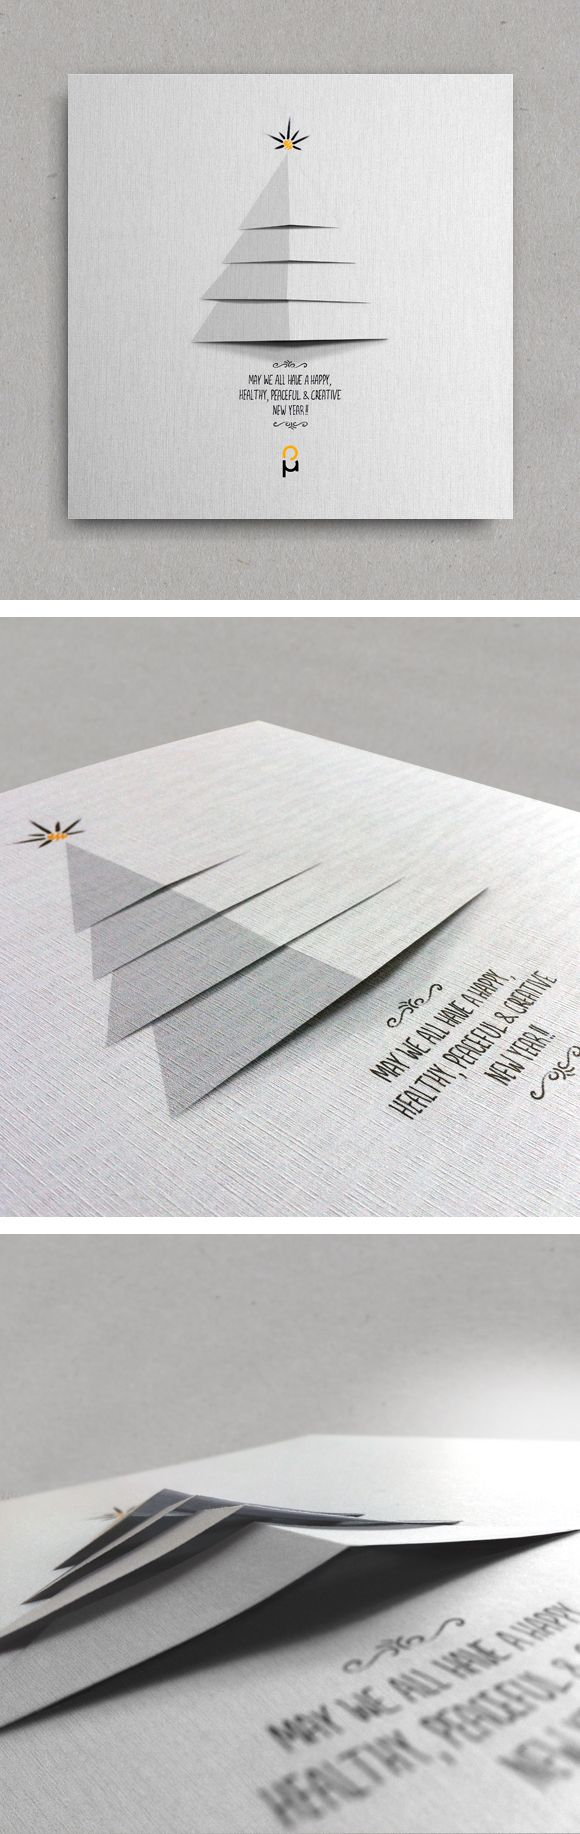 Christmas New Year Greeting Cards by Vasilis Magoulas, via Behance / #xmas #2014 #newyear